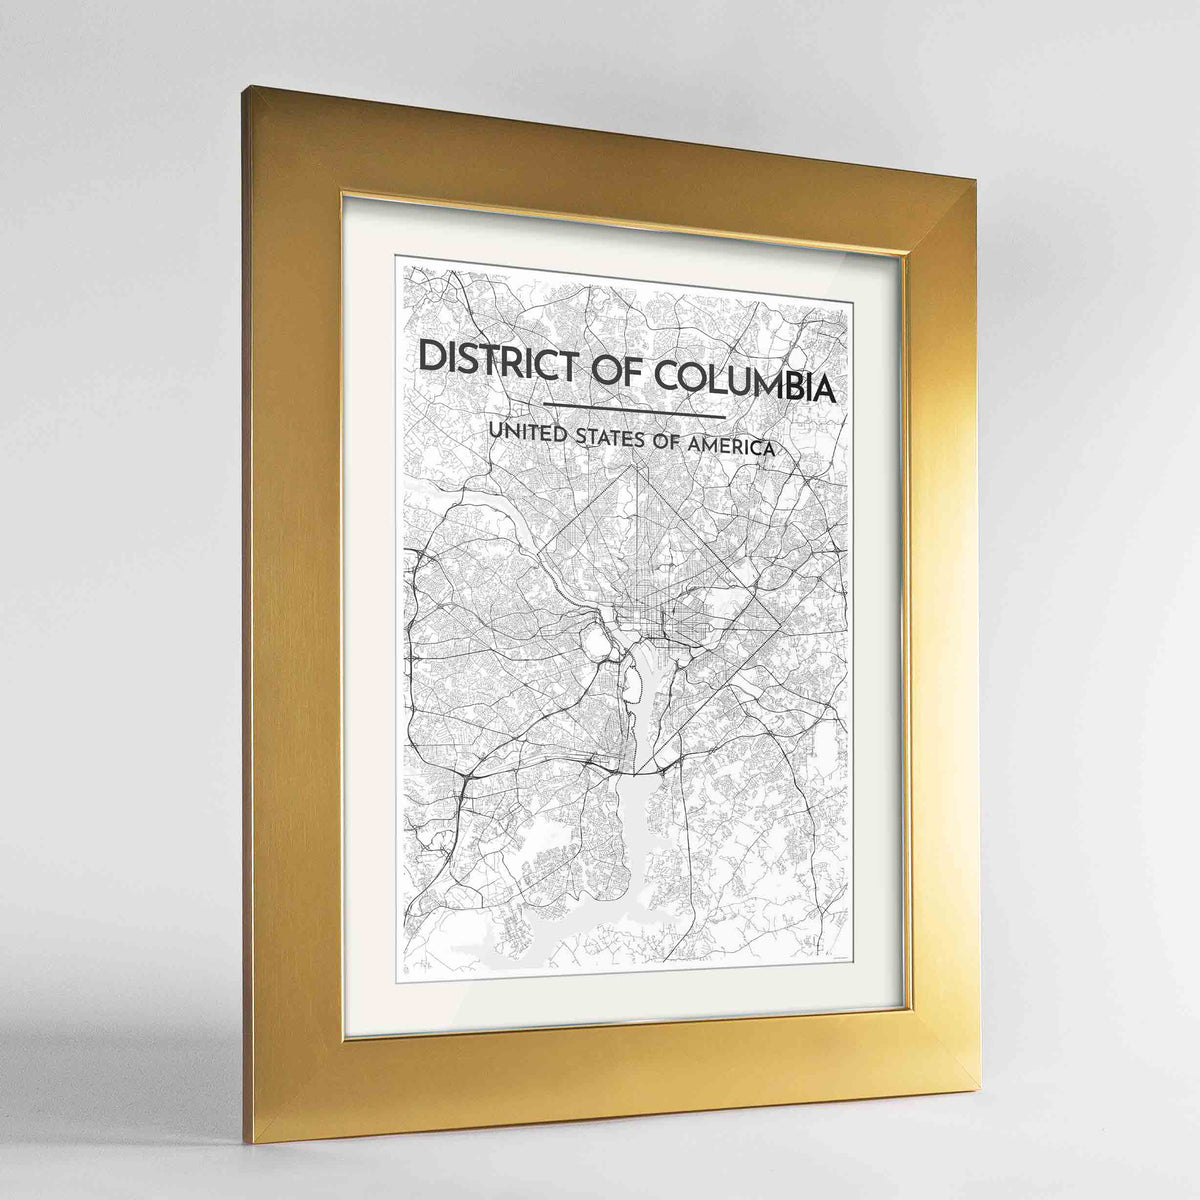 "Framed District of Columbia Map Art Print 24x36"" Gold frame Point Two Design Group"